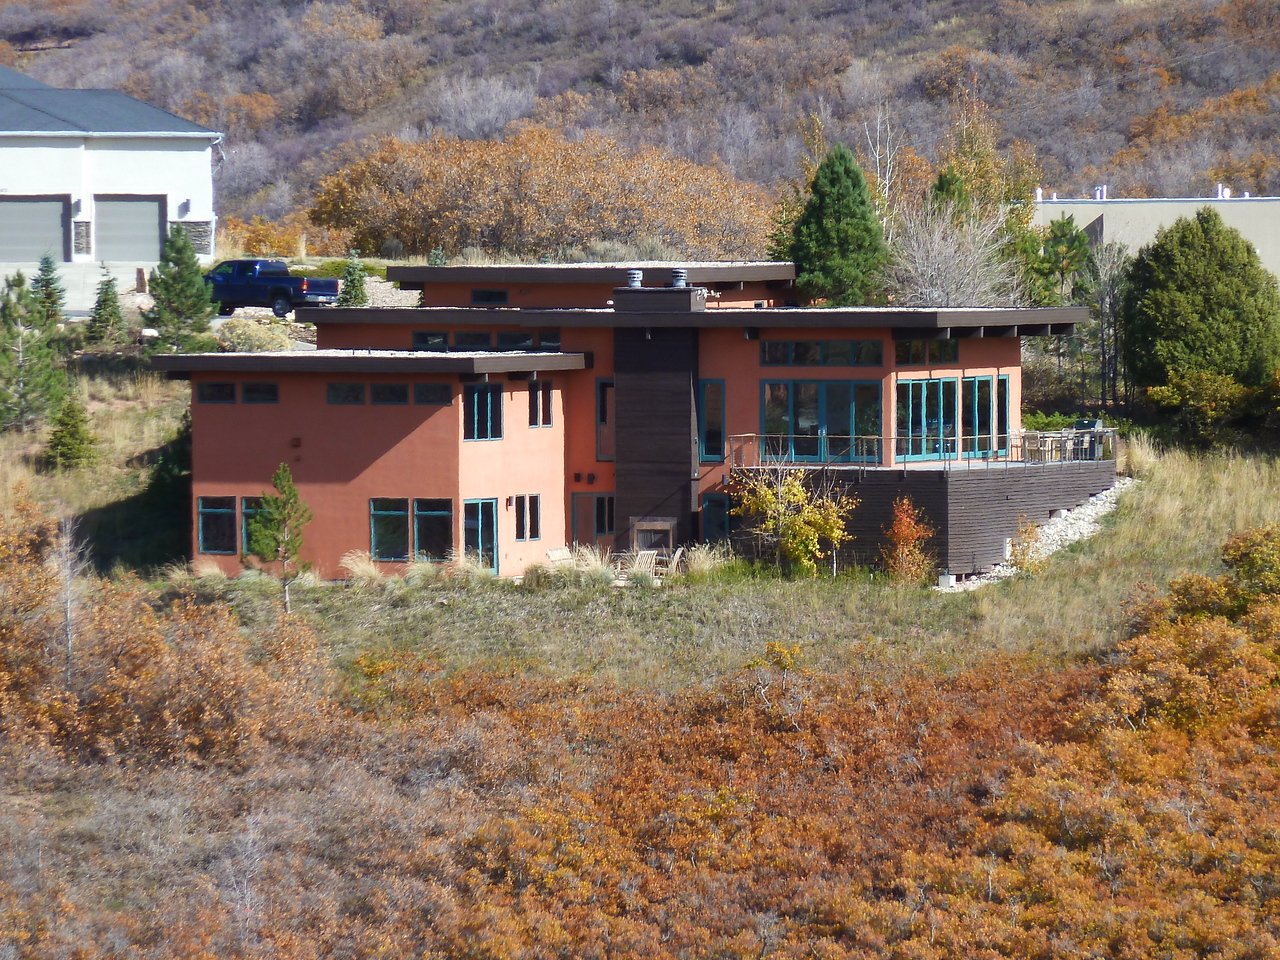 Our house outside of Salt Lake City in Emigration Canyon!